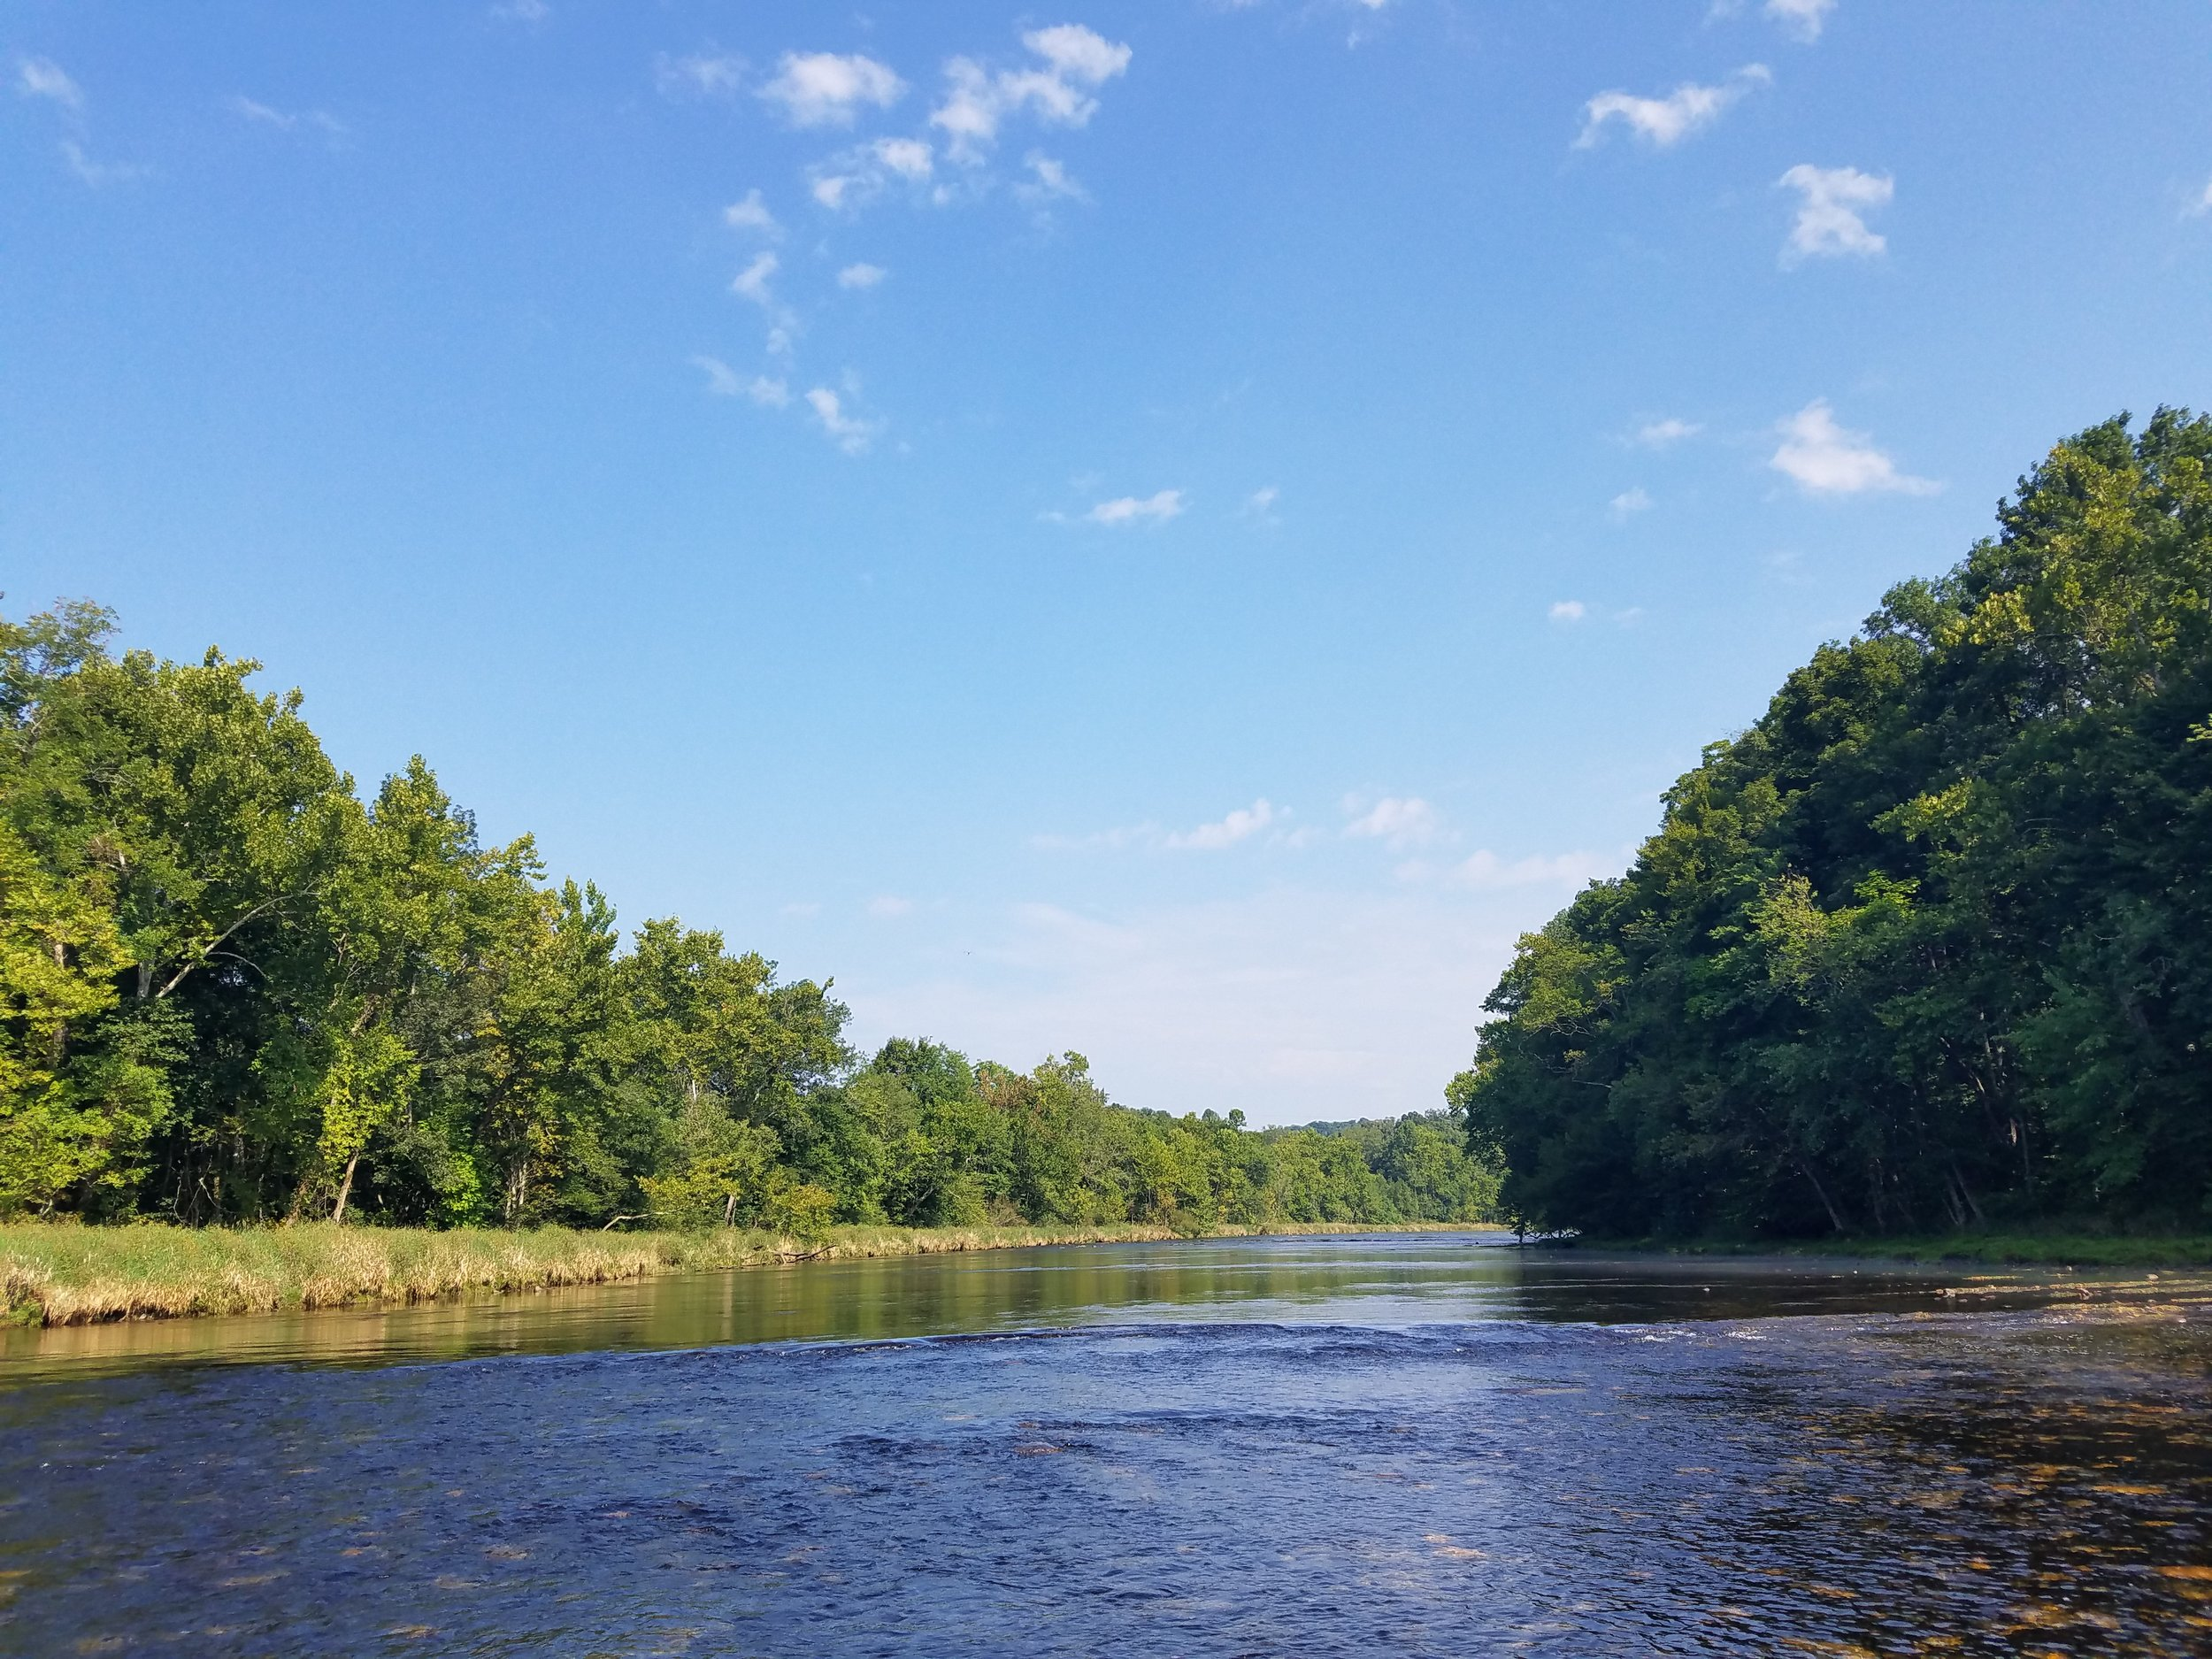 The South Holston River